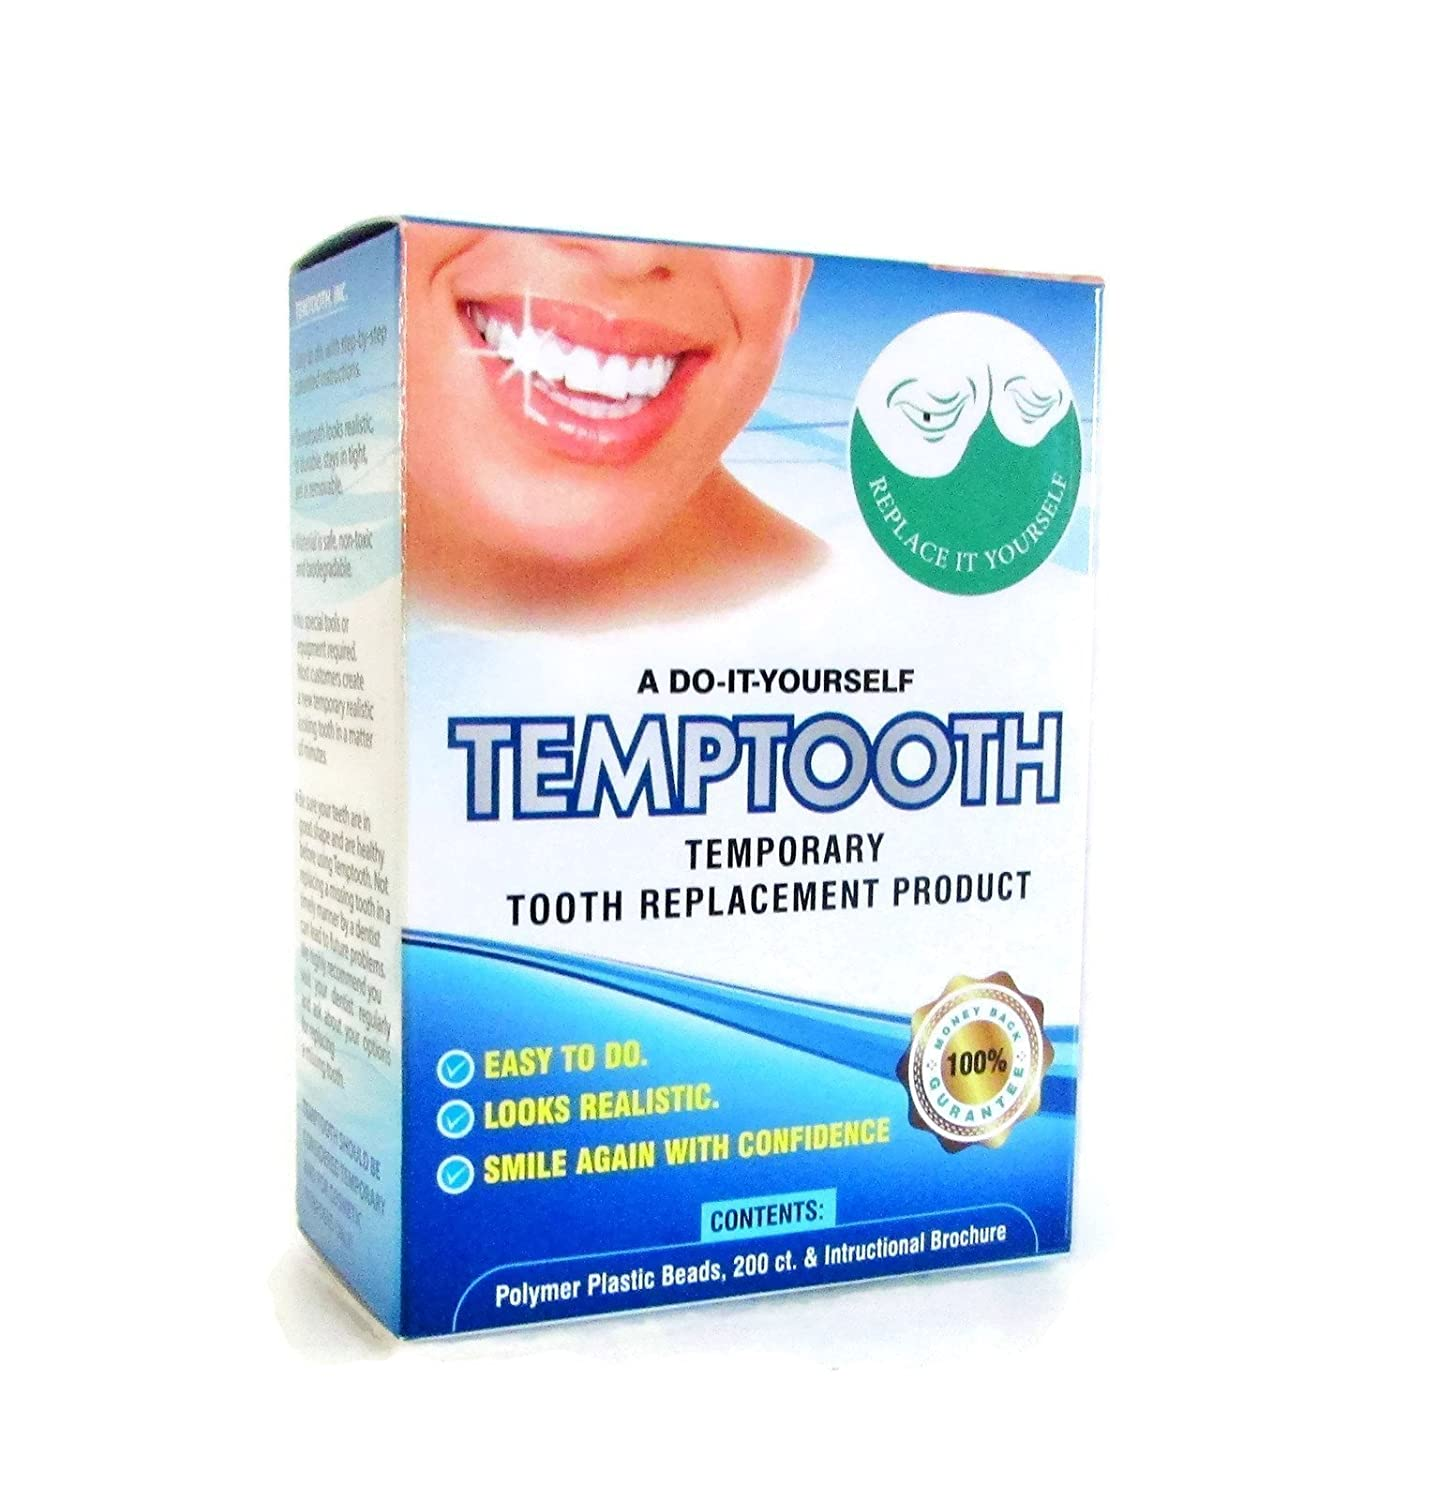 Temptooth #1 Seller Trusted Patented Temporary Tooth Replacement Product, 3.8 L 3.8 L 1425